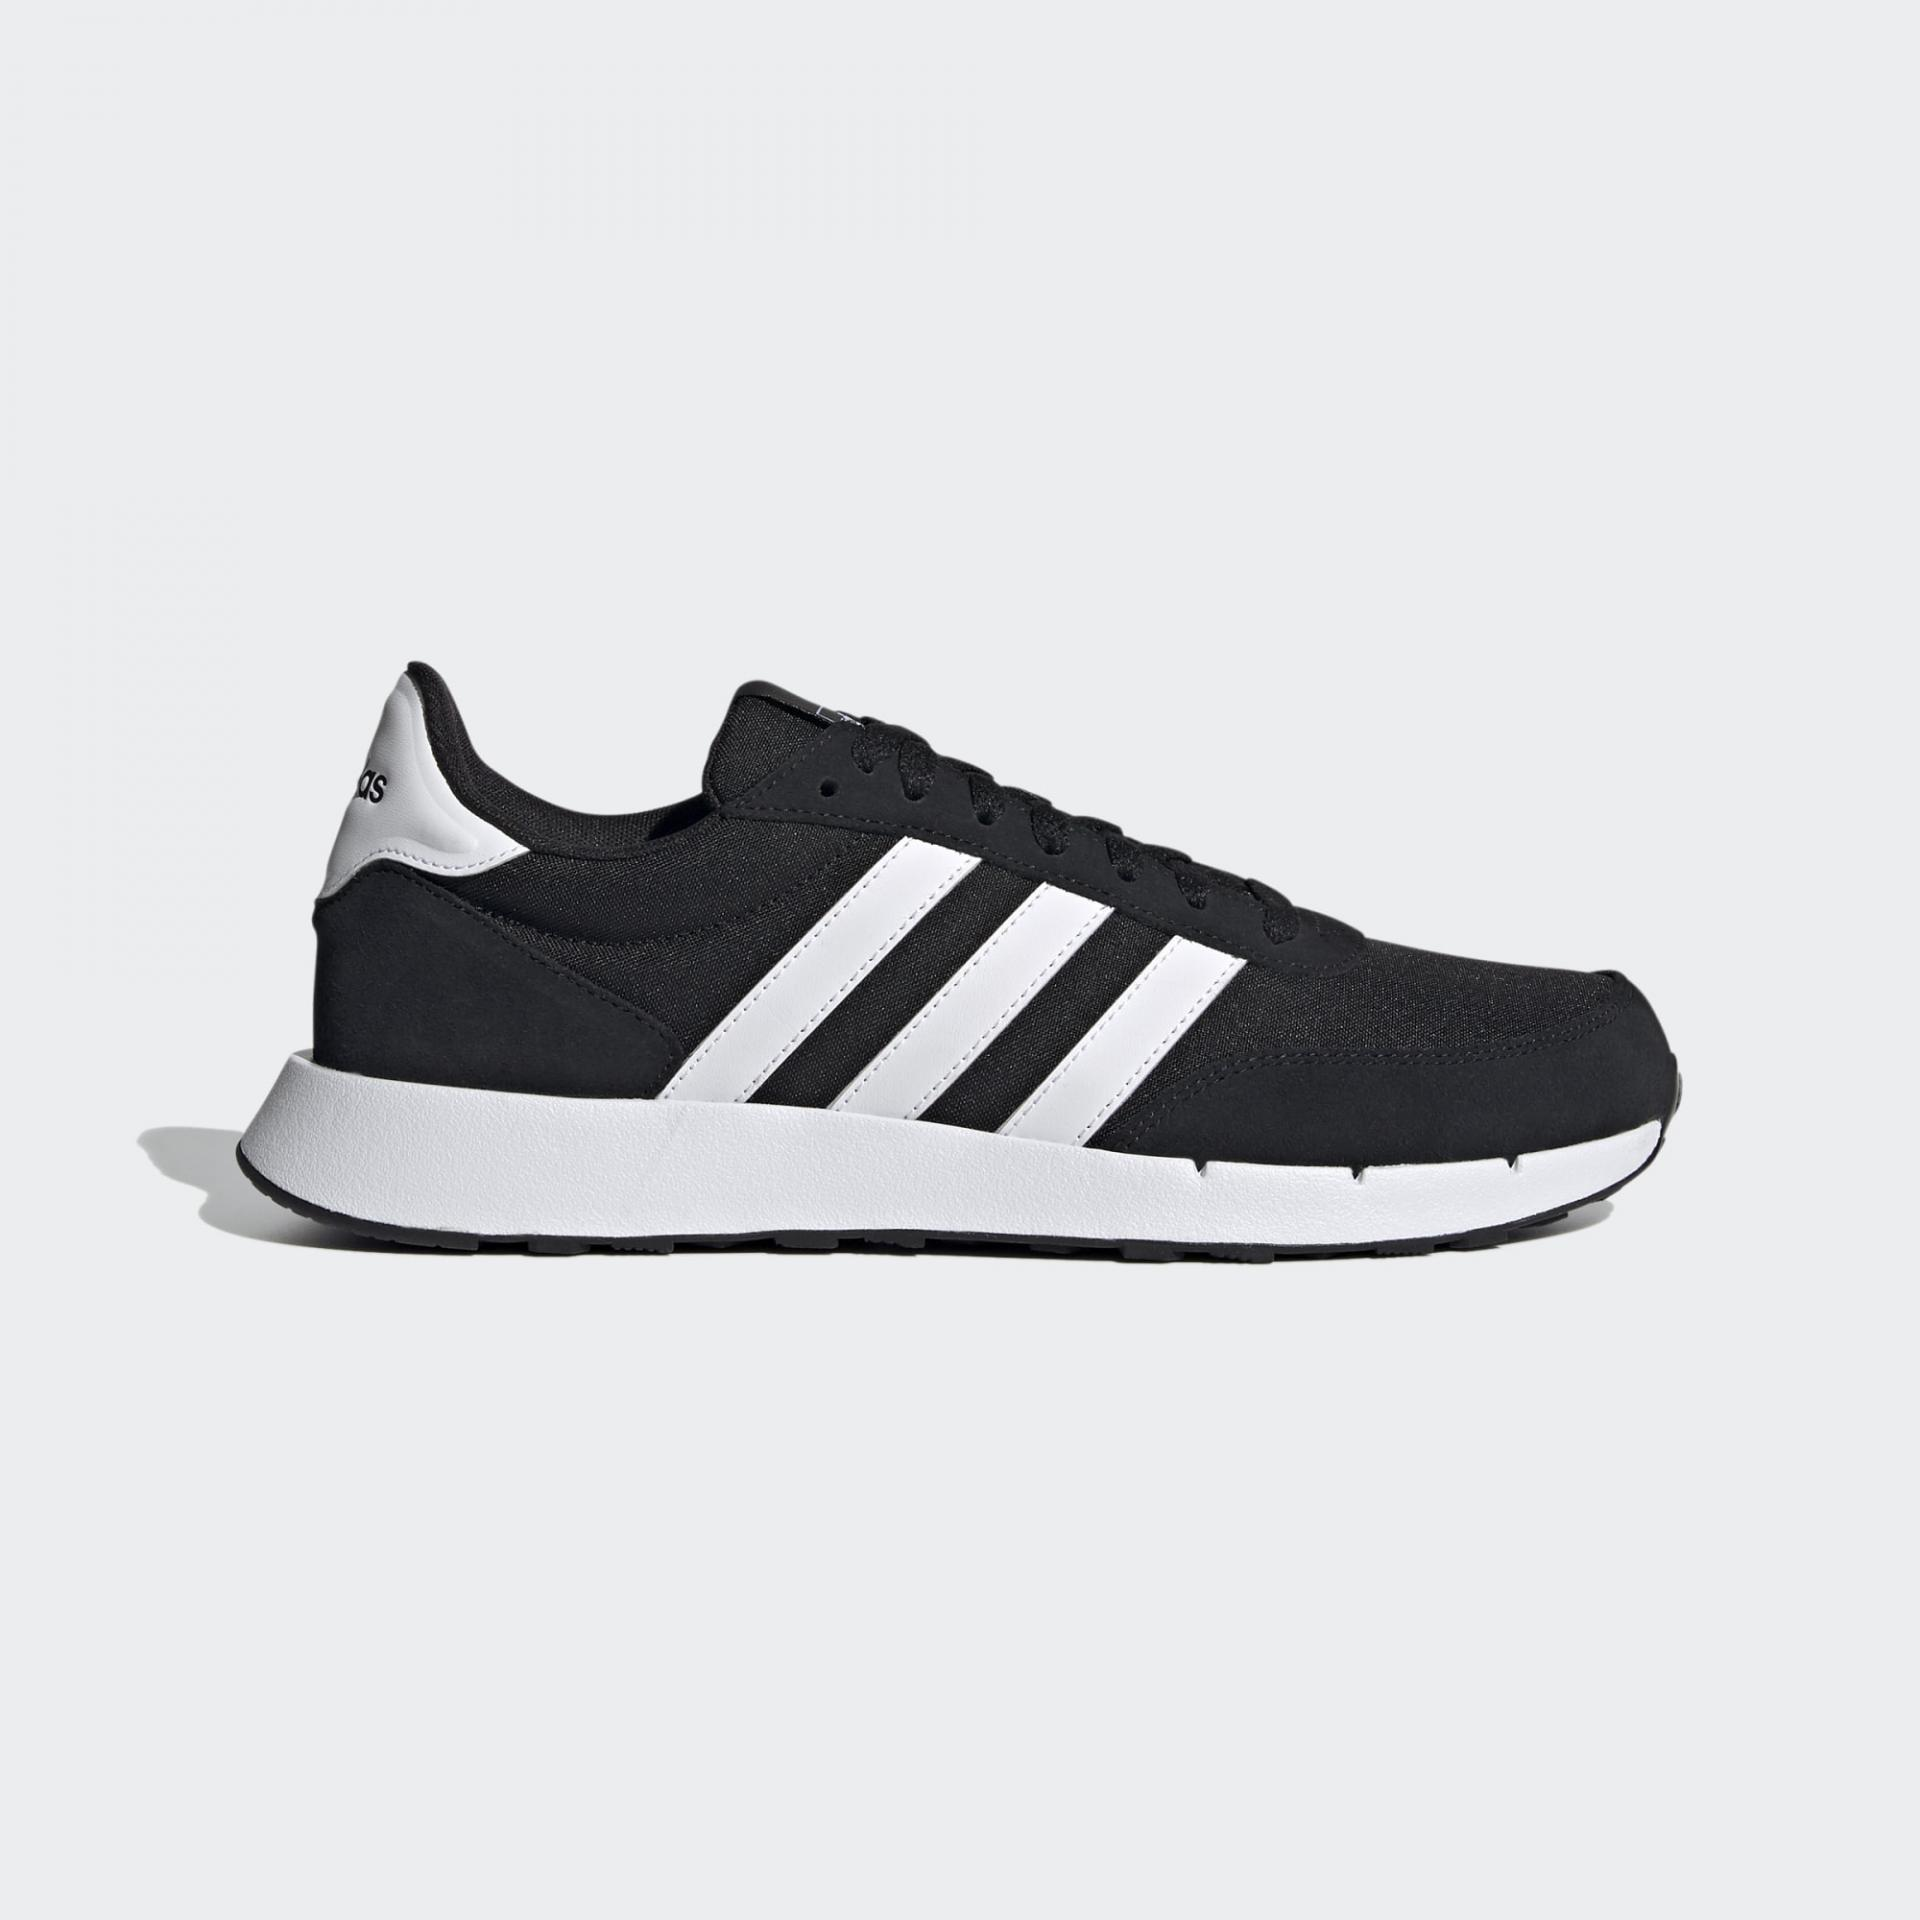 Adidas Run 60s 2.0. FZ0961 Black/white.